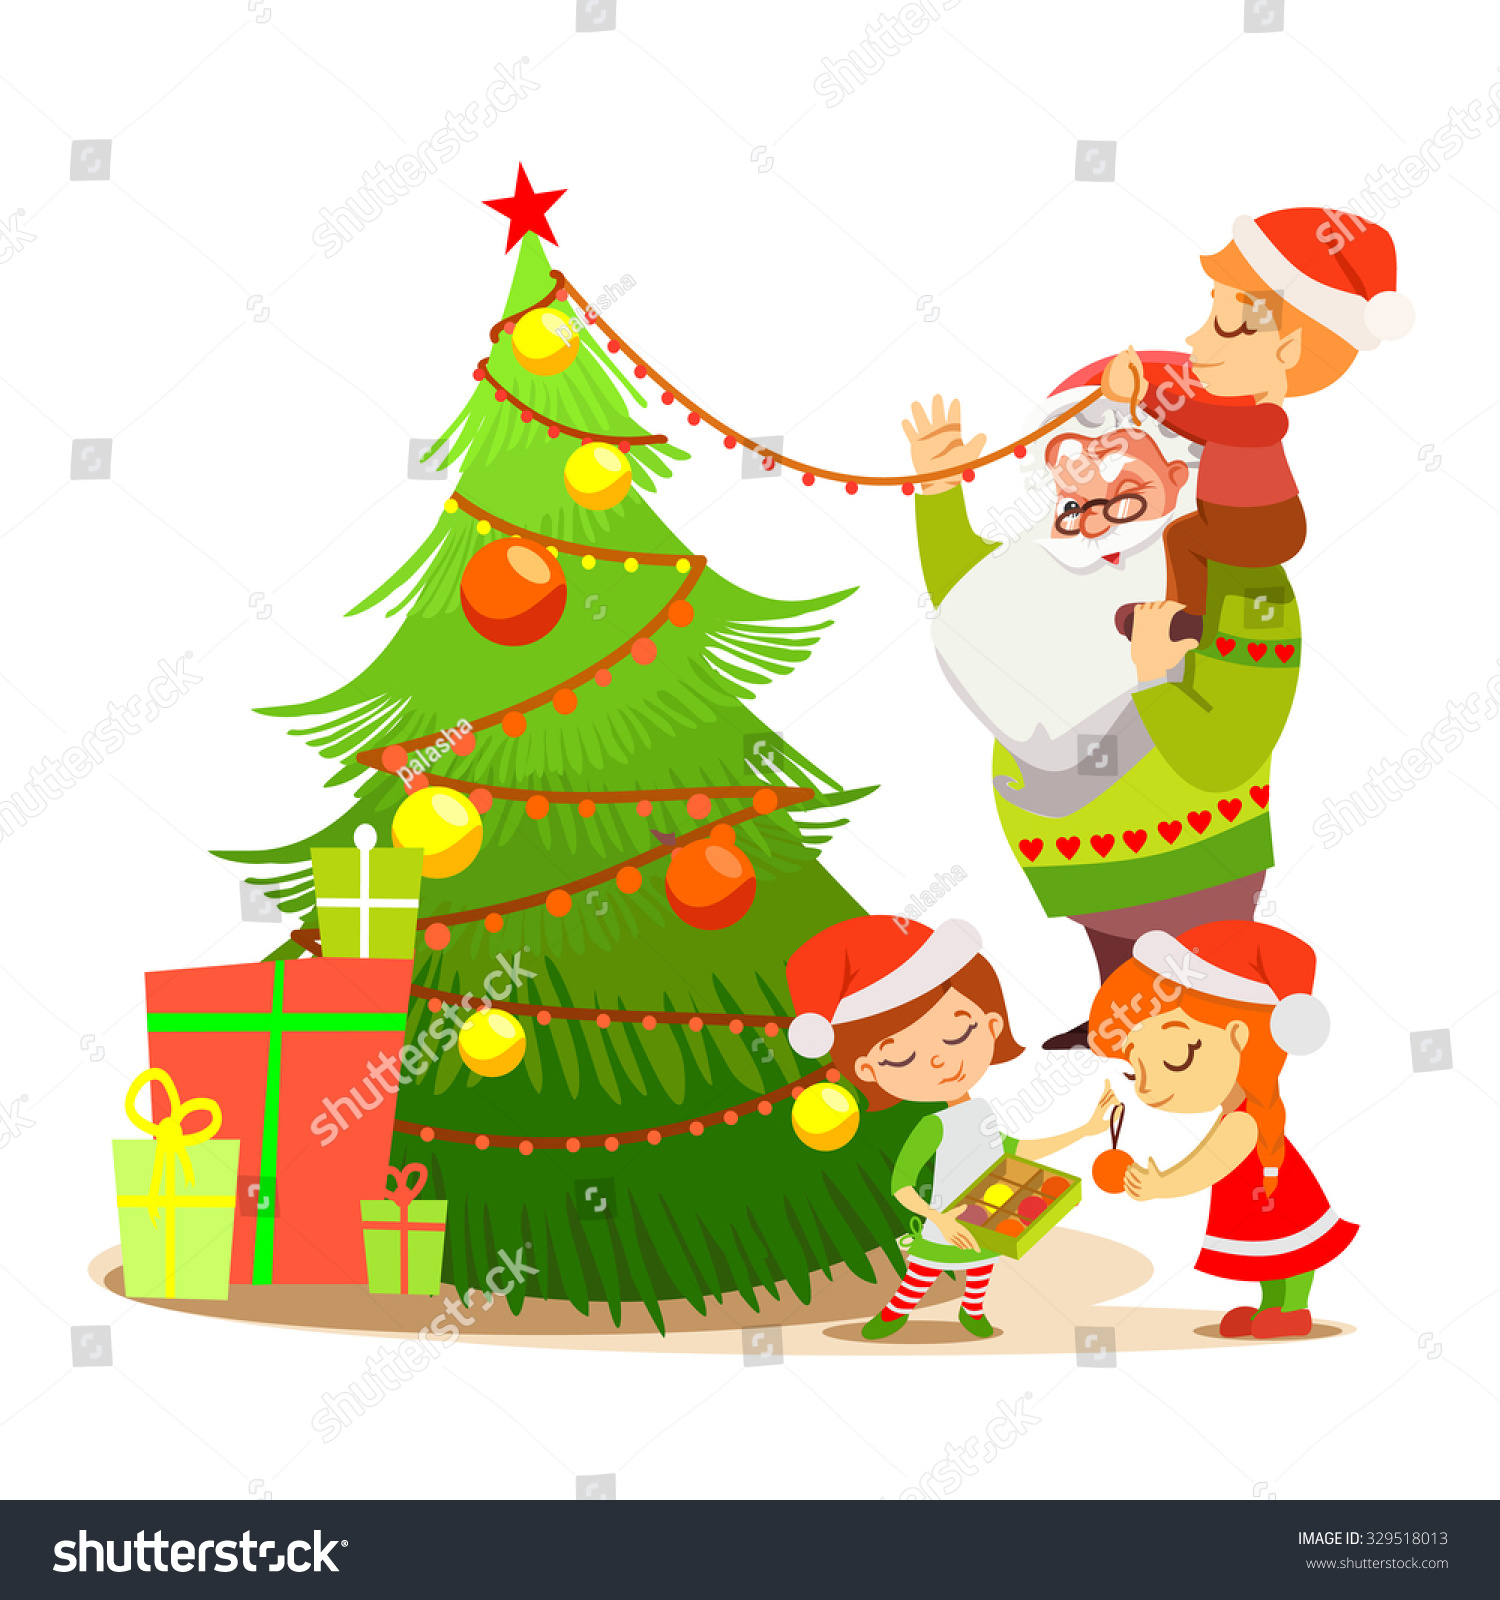 Santa claus decorating christmas tree with sweet elves merry christmas